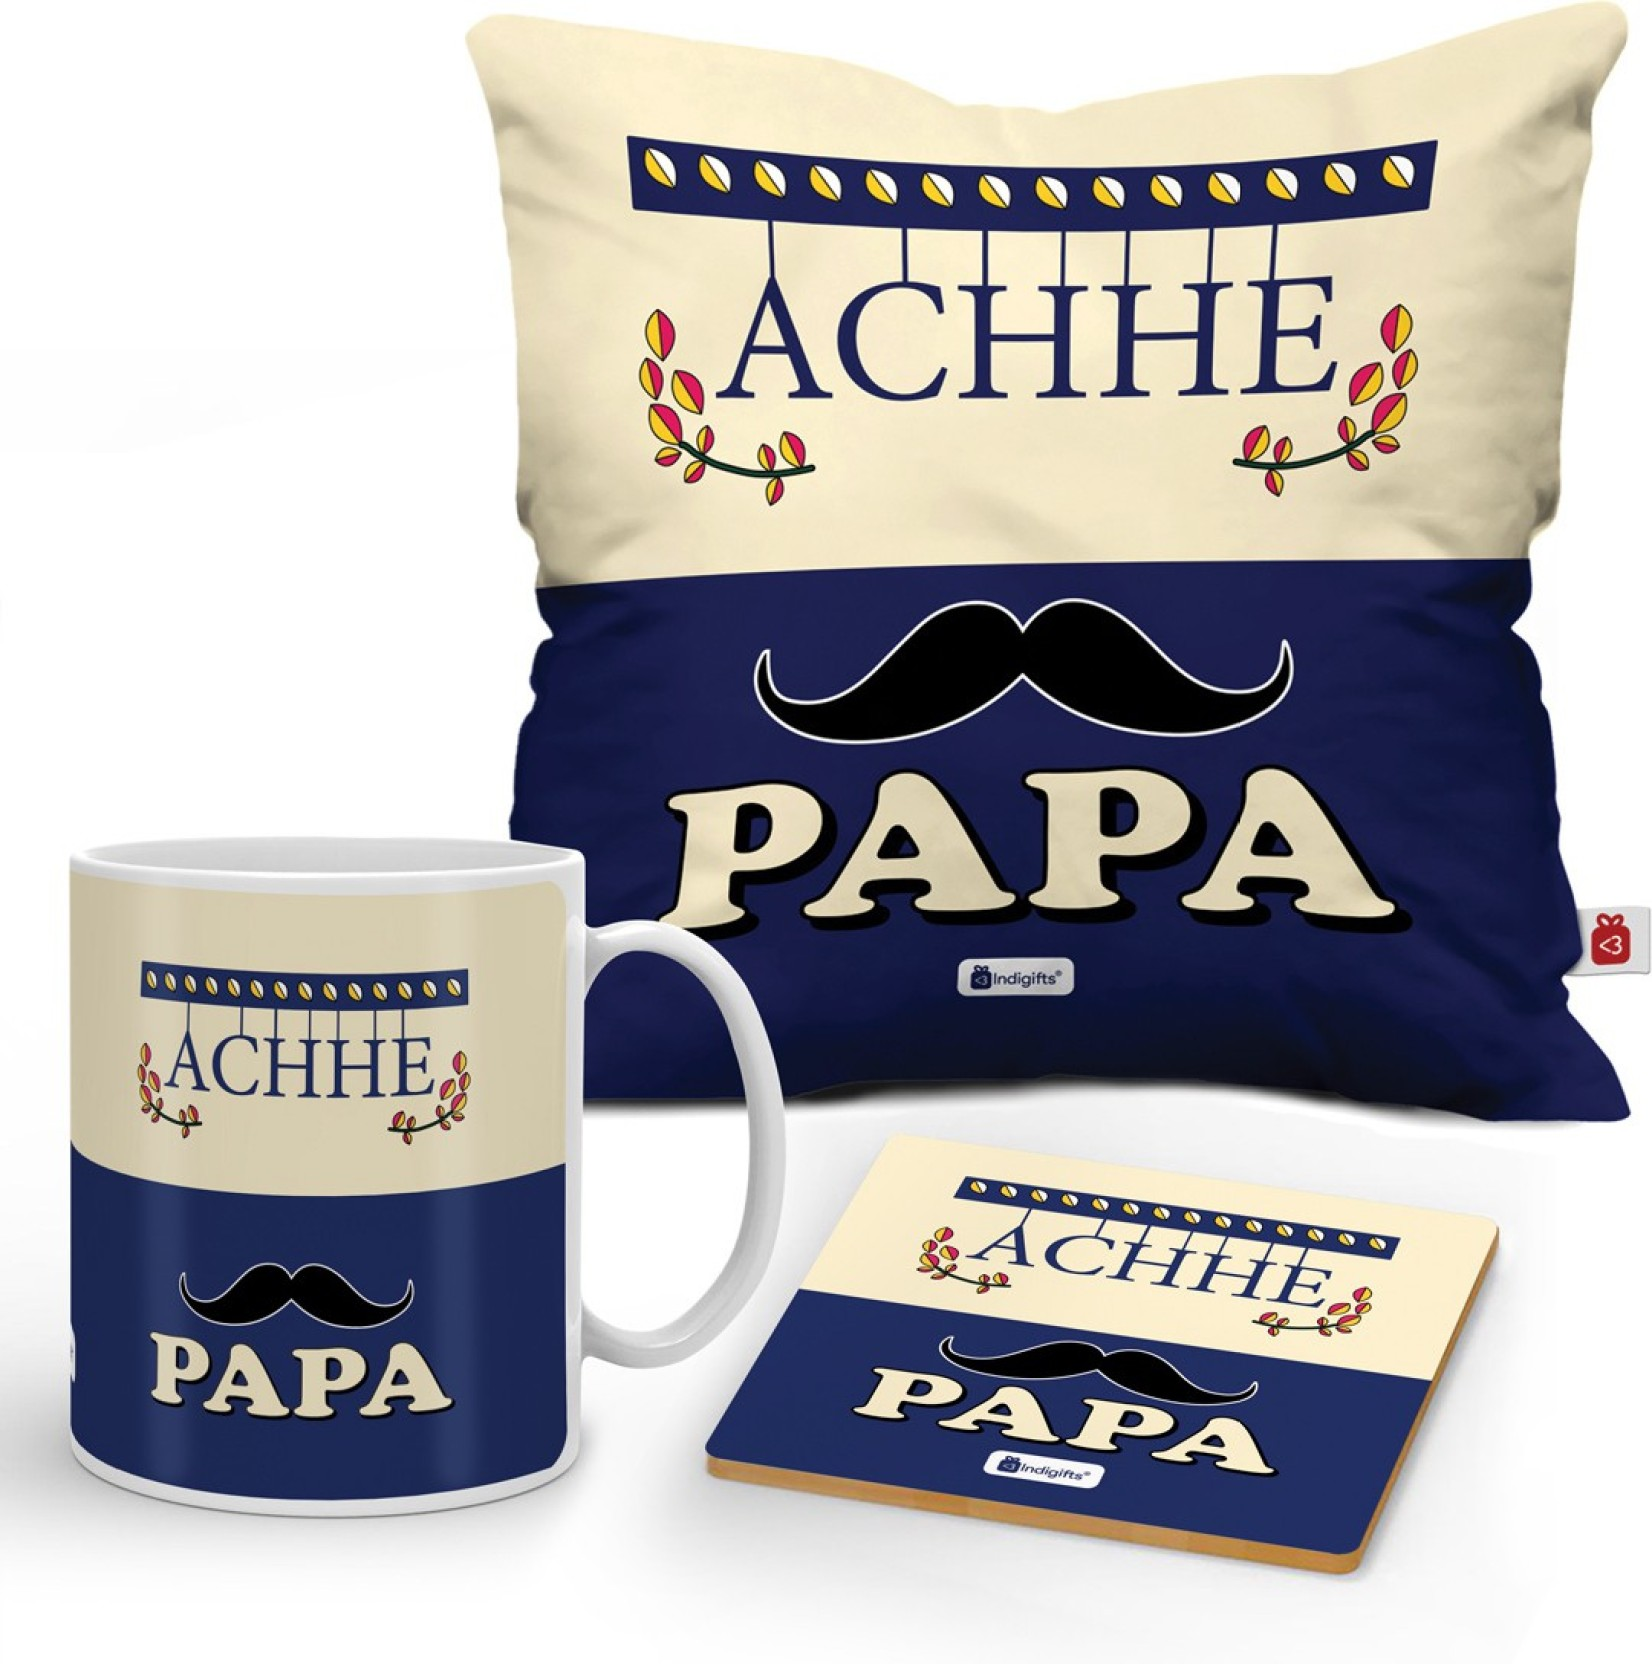 Indigifts Fathers Day Gifts Birthday Gift Anniversary For Mom Dad Papa Cushion Mug Coaster DAD18095